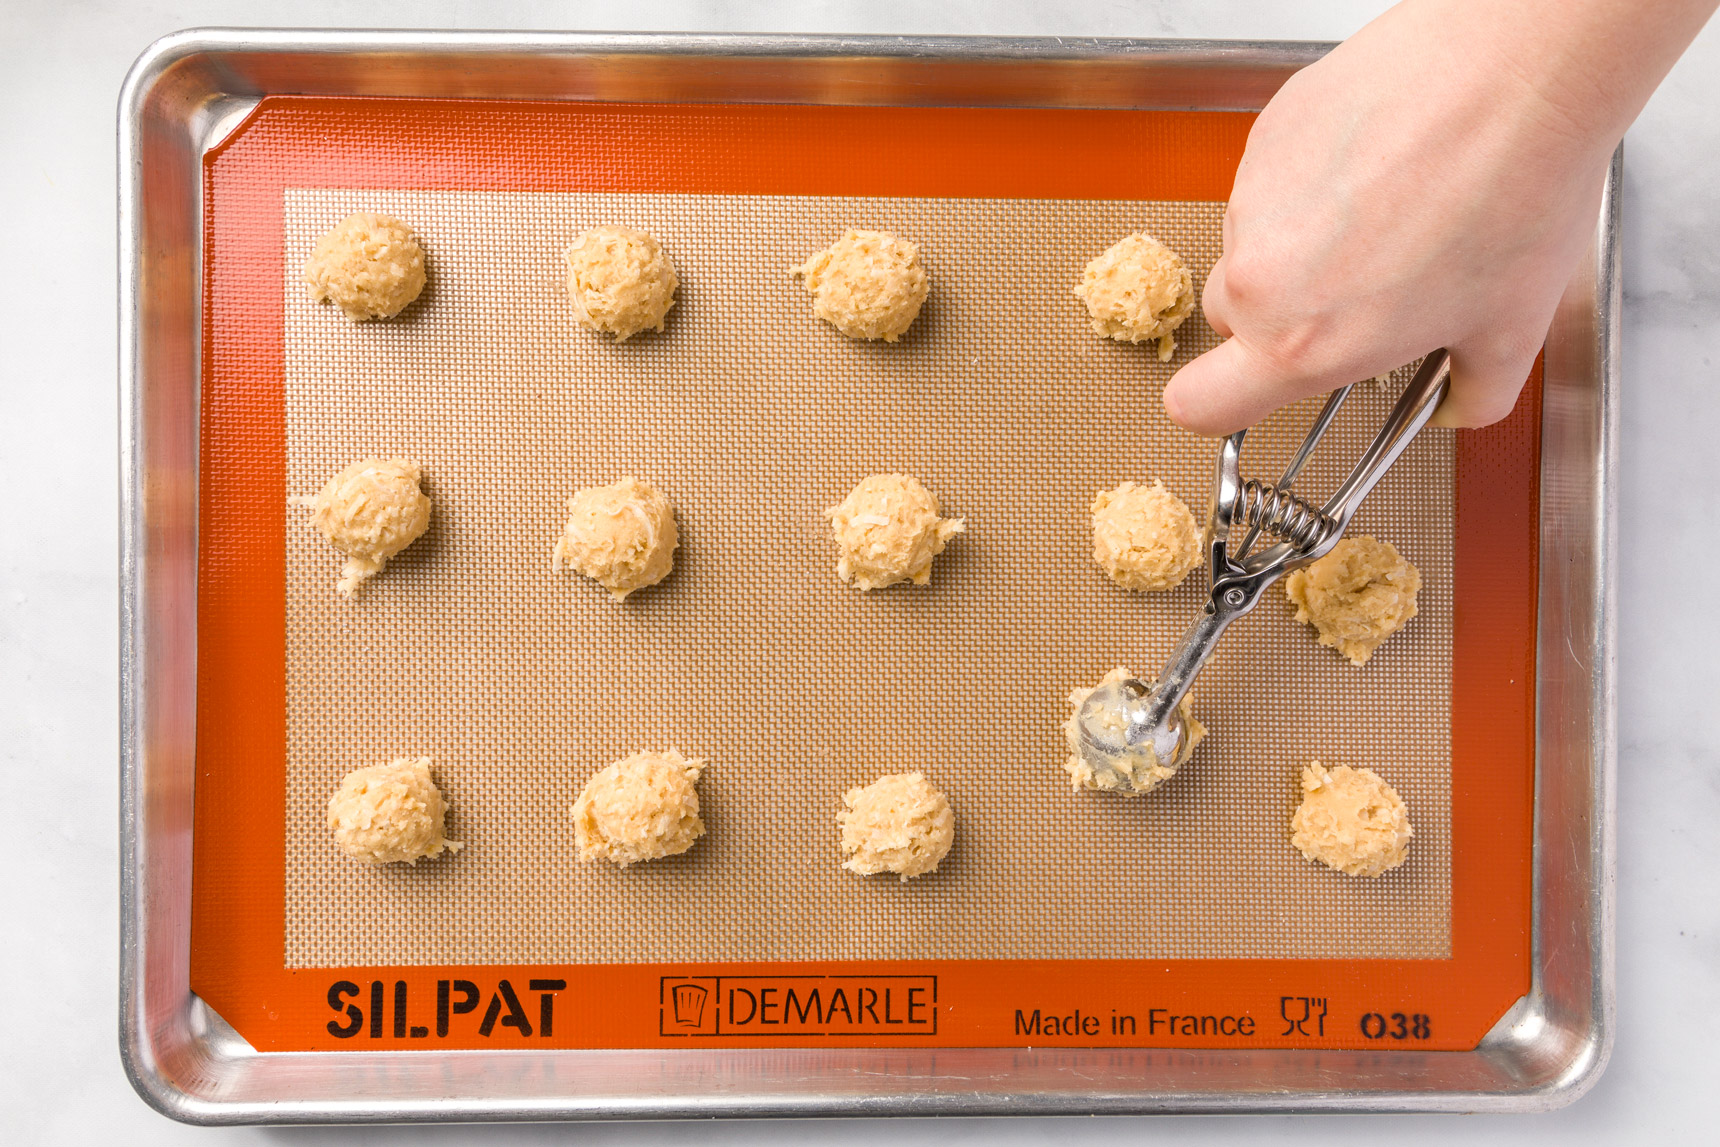 Drop coconut cookie dough onto a lined sheet pan